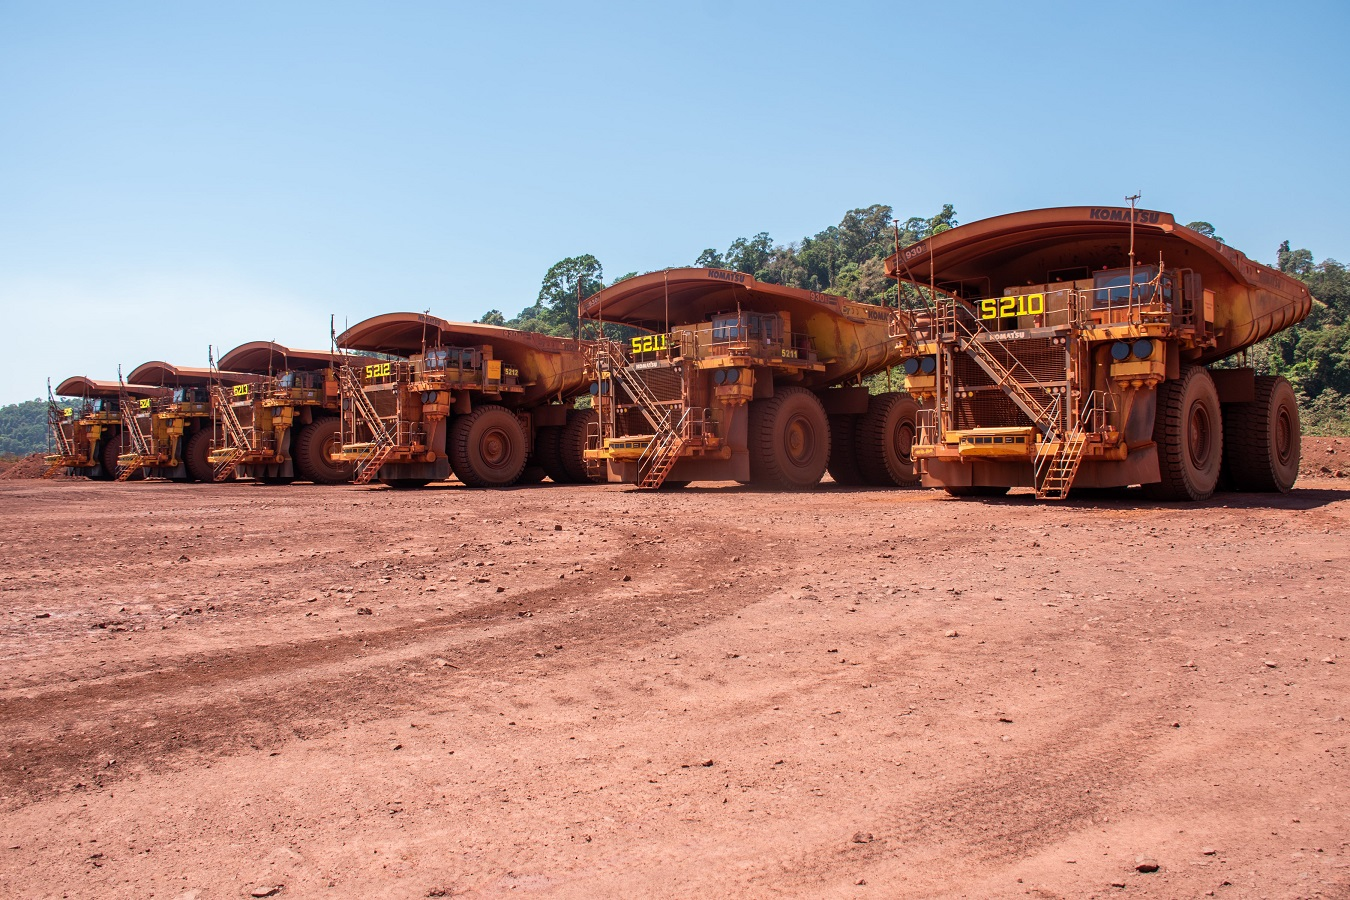 Focused on safety and people, Vale starts operating autonomous trucks in its largest iron ore complex, in Brazil